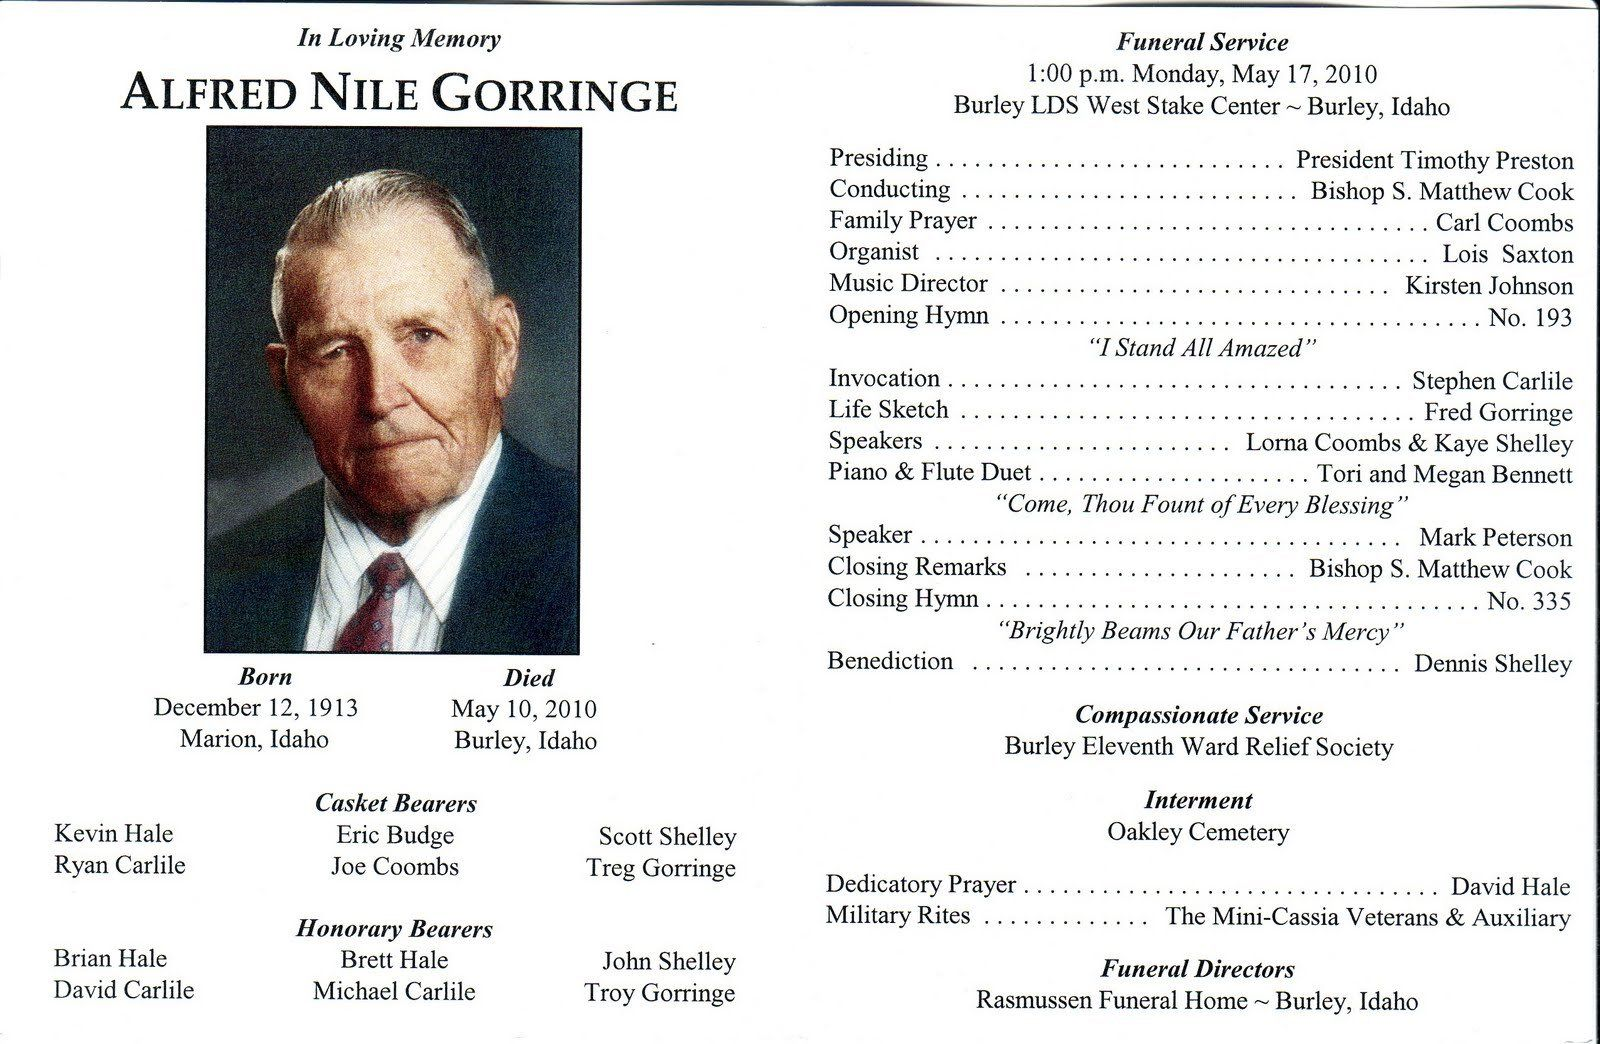 Memorial Service Programs Sample LDS Burial And Mormon Funeral  Dd80e32b9b960d3b03d86d1a3f797c4b 416231190534504146. Memorial Service Template  Word  Funeral Program Word Template